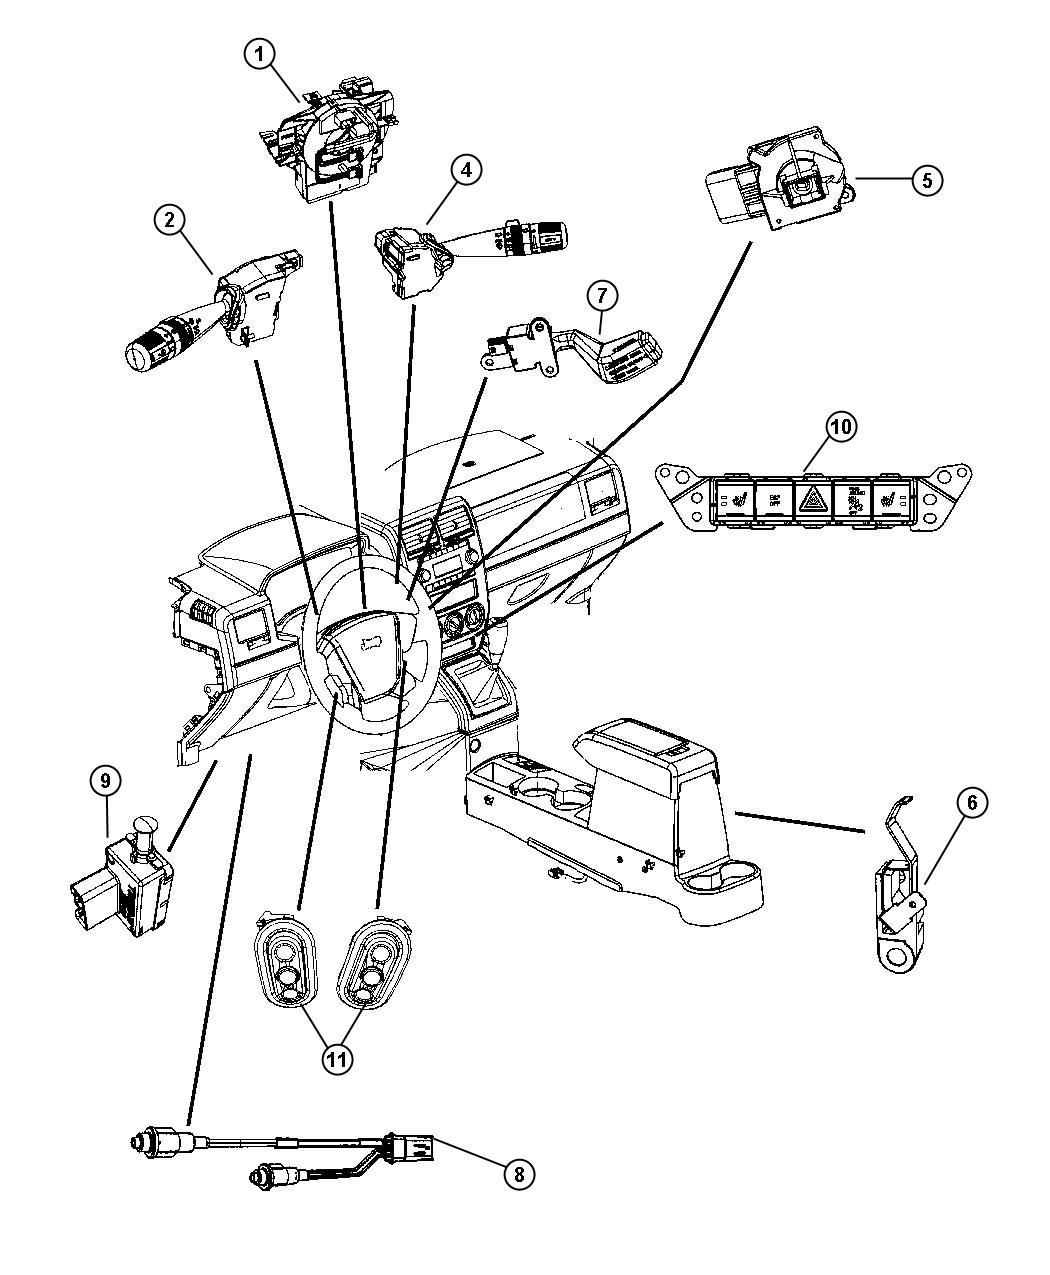 tags: #club car 48v wiring diagram#columbia par car battery diagram#columbia  golf cart wiring diagram#columbia par car parts diagram#columbia par car  parts